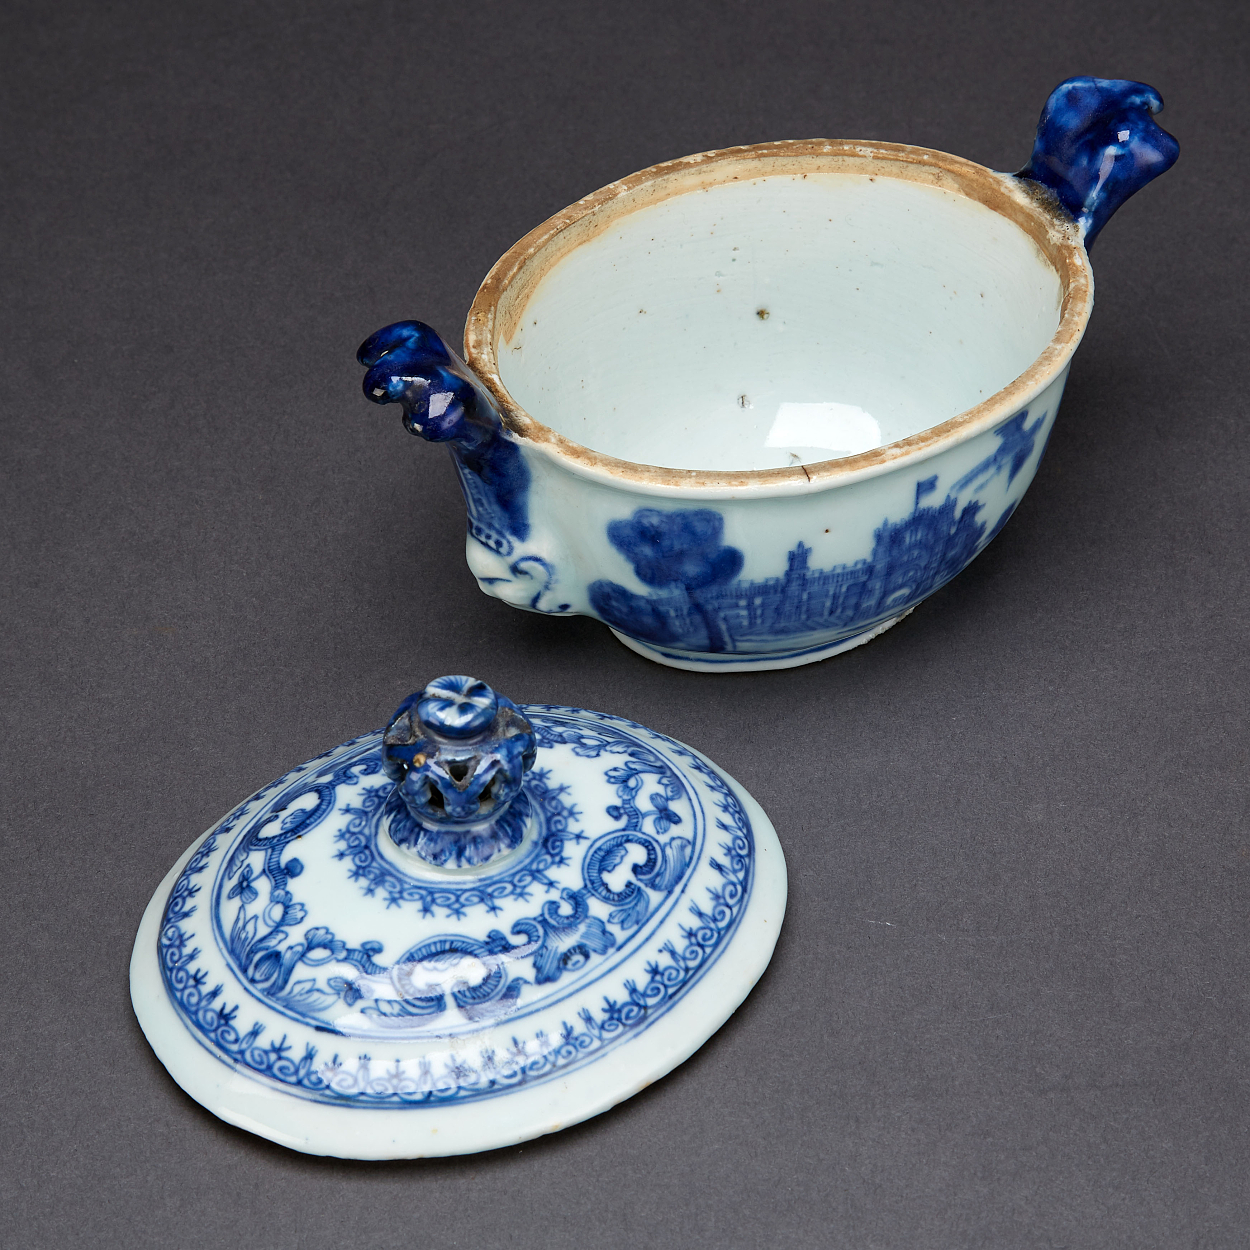 A Blue and White 'Burghley House' Butter Tub